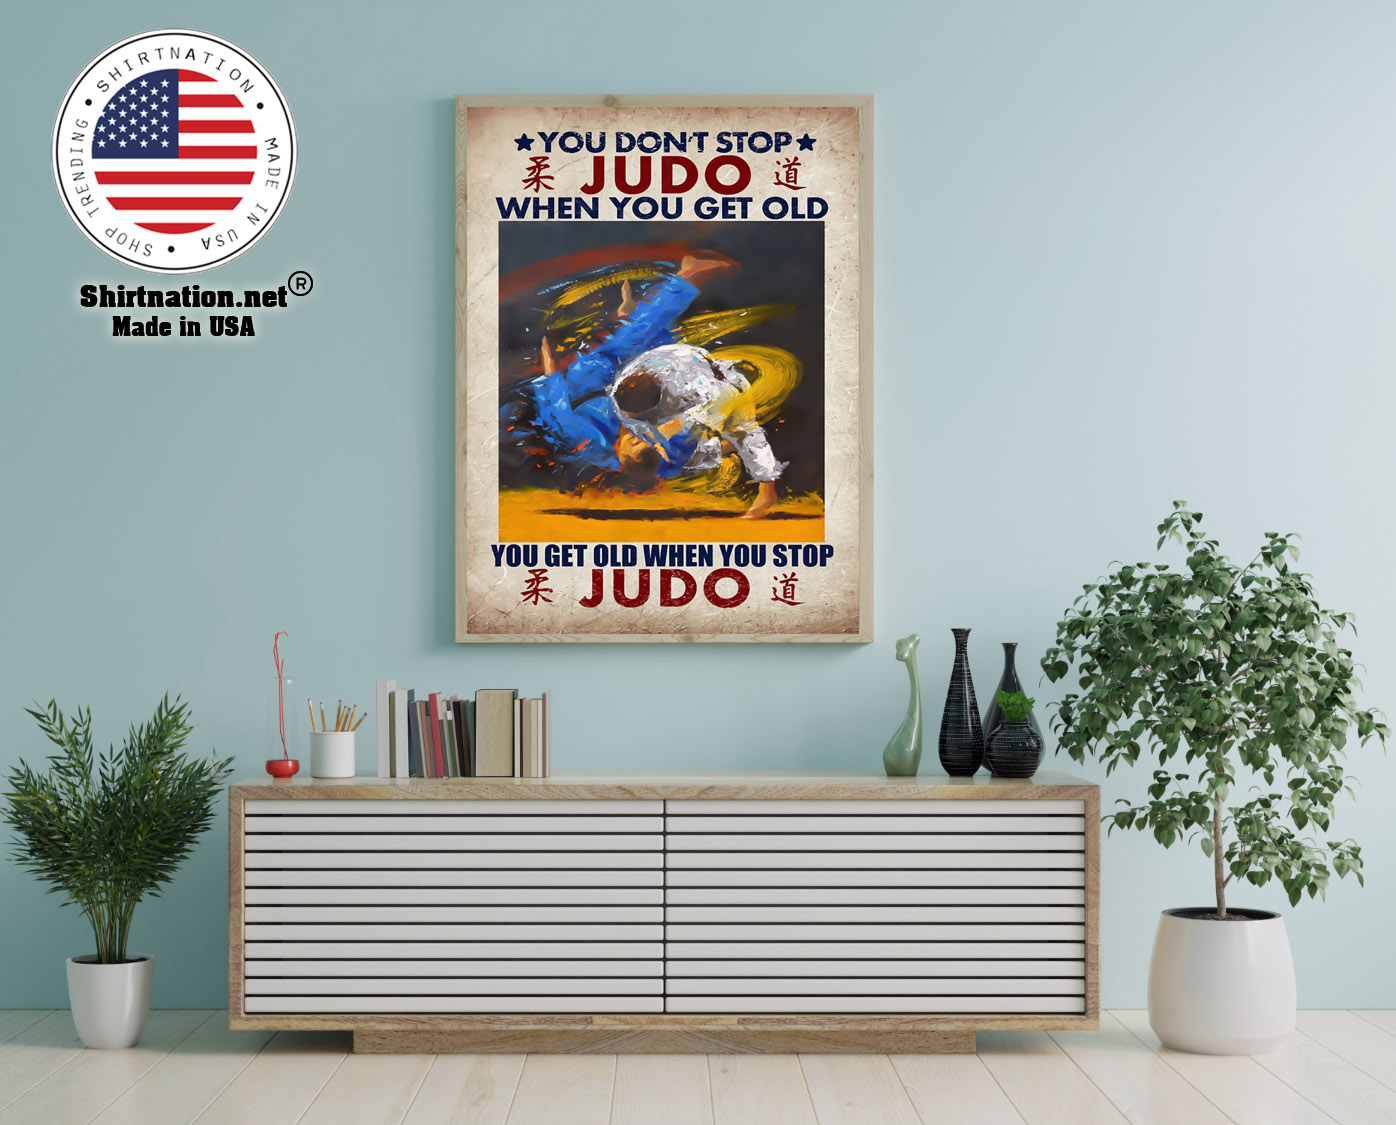 You dont stop judo when you get old canvas poster 12